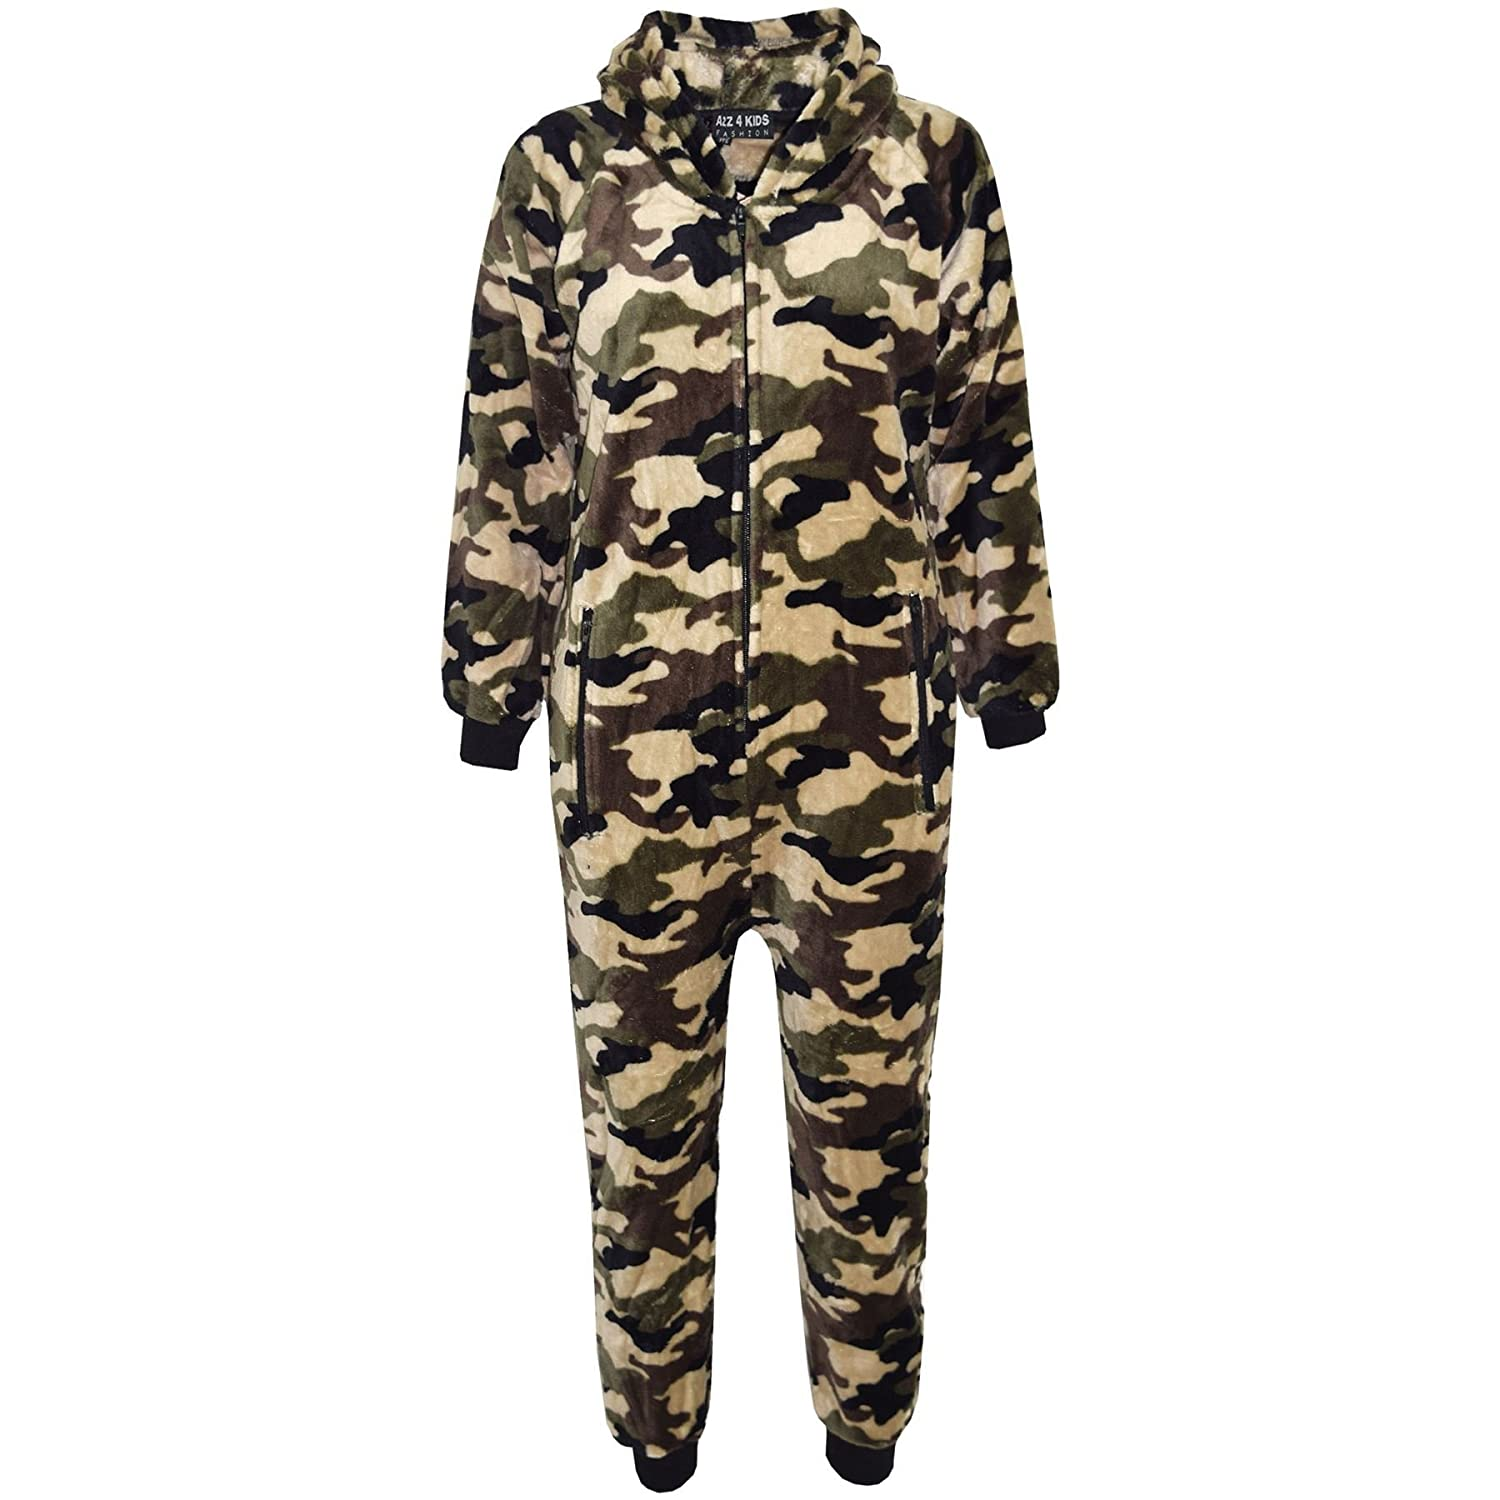 A2Z 4 Kids® Kids Girls Boys Onesie Extra Soft Fluffy Camouflage All in One Halloween Costume New Age 7 8 9 10 11 12 13 14 Years